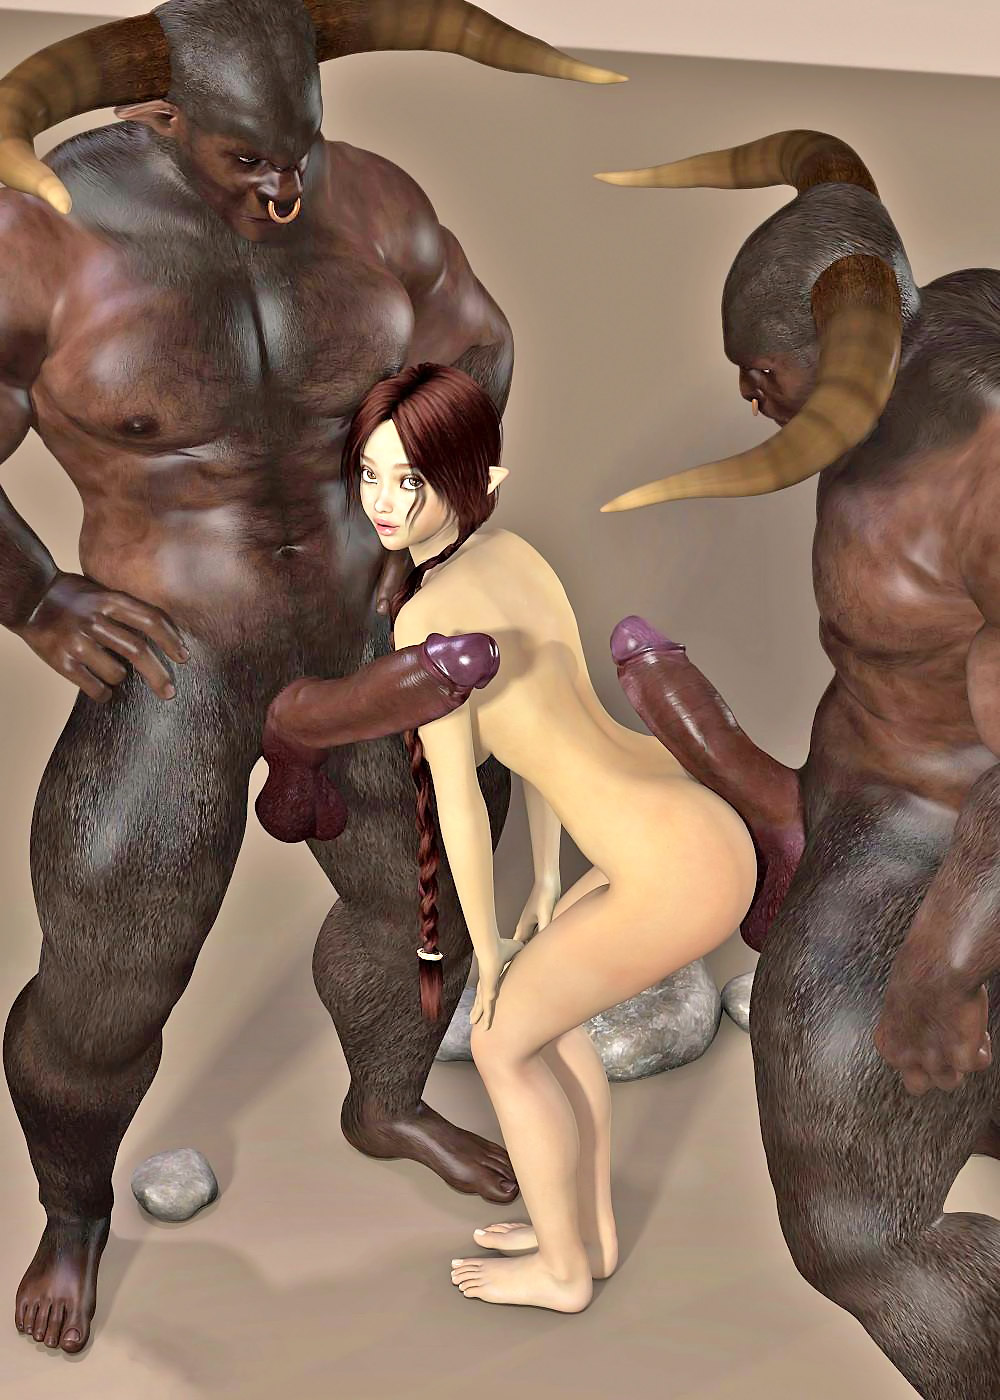 Man fucking with female monster sexy pictures